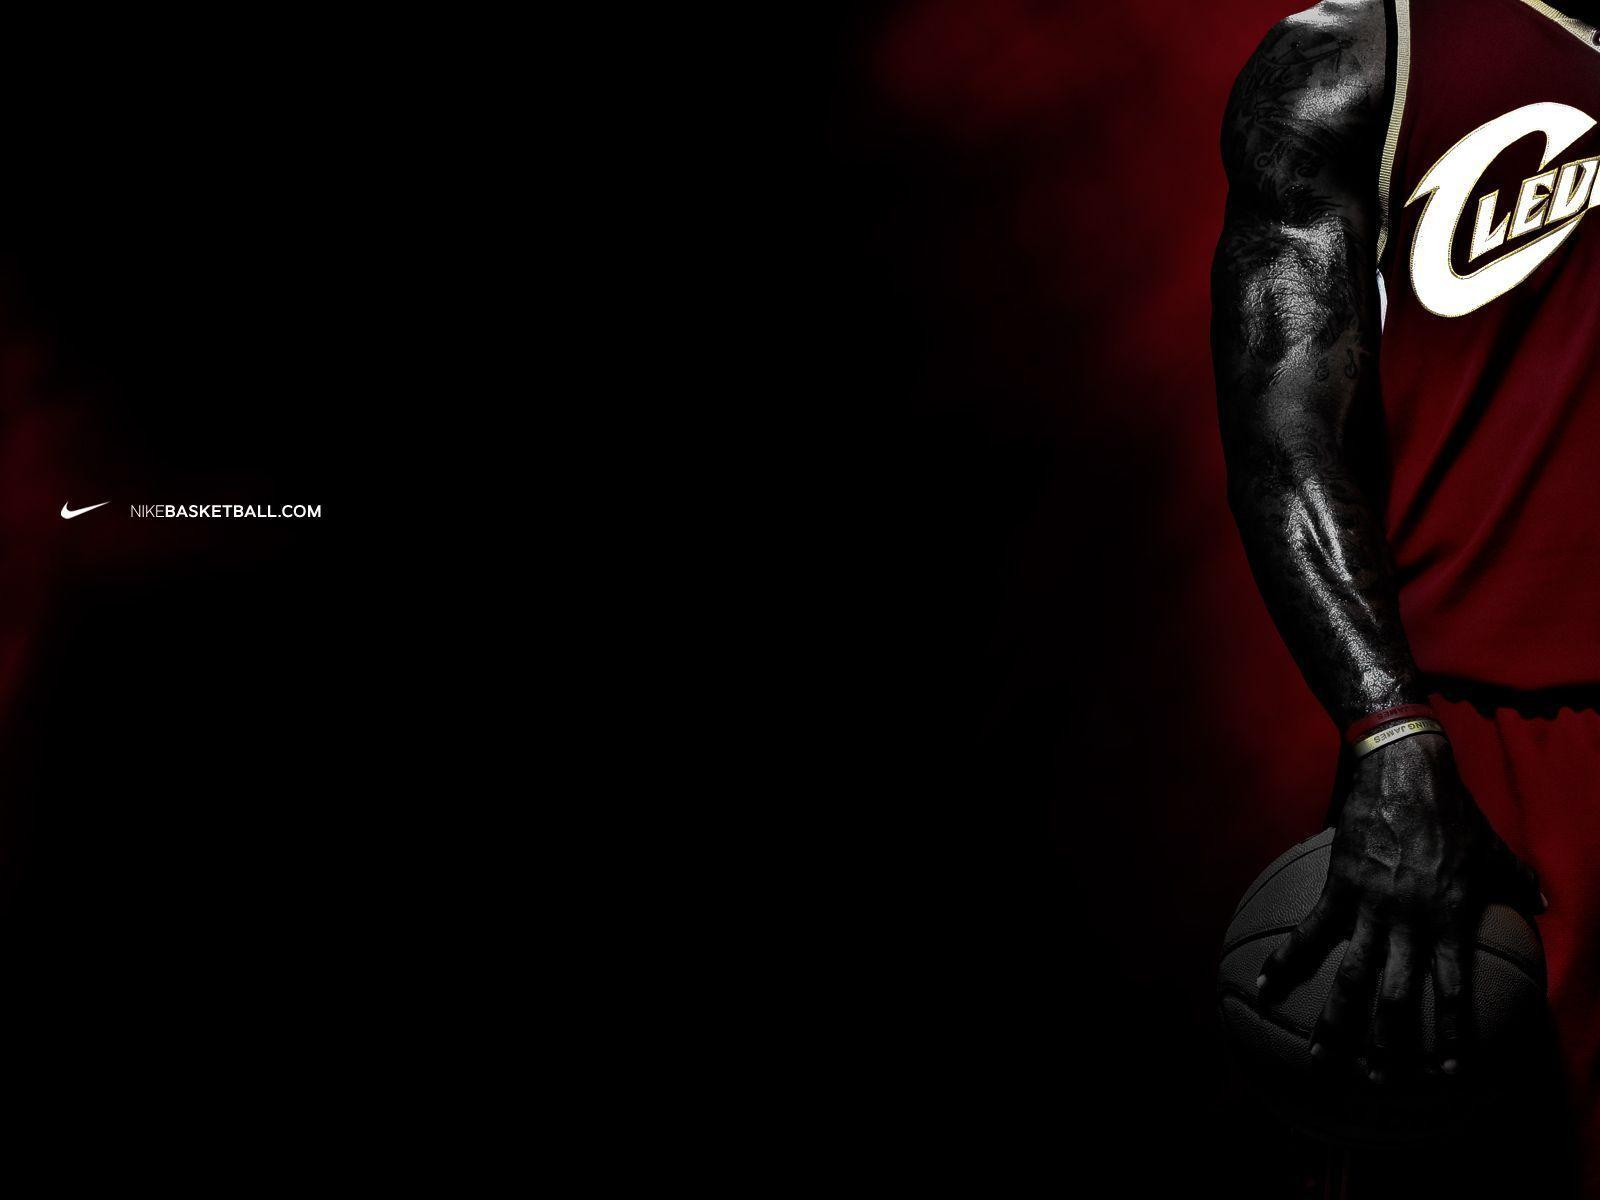 Lebron Nike Wallpaper